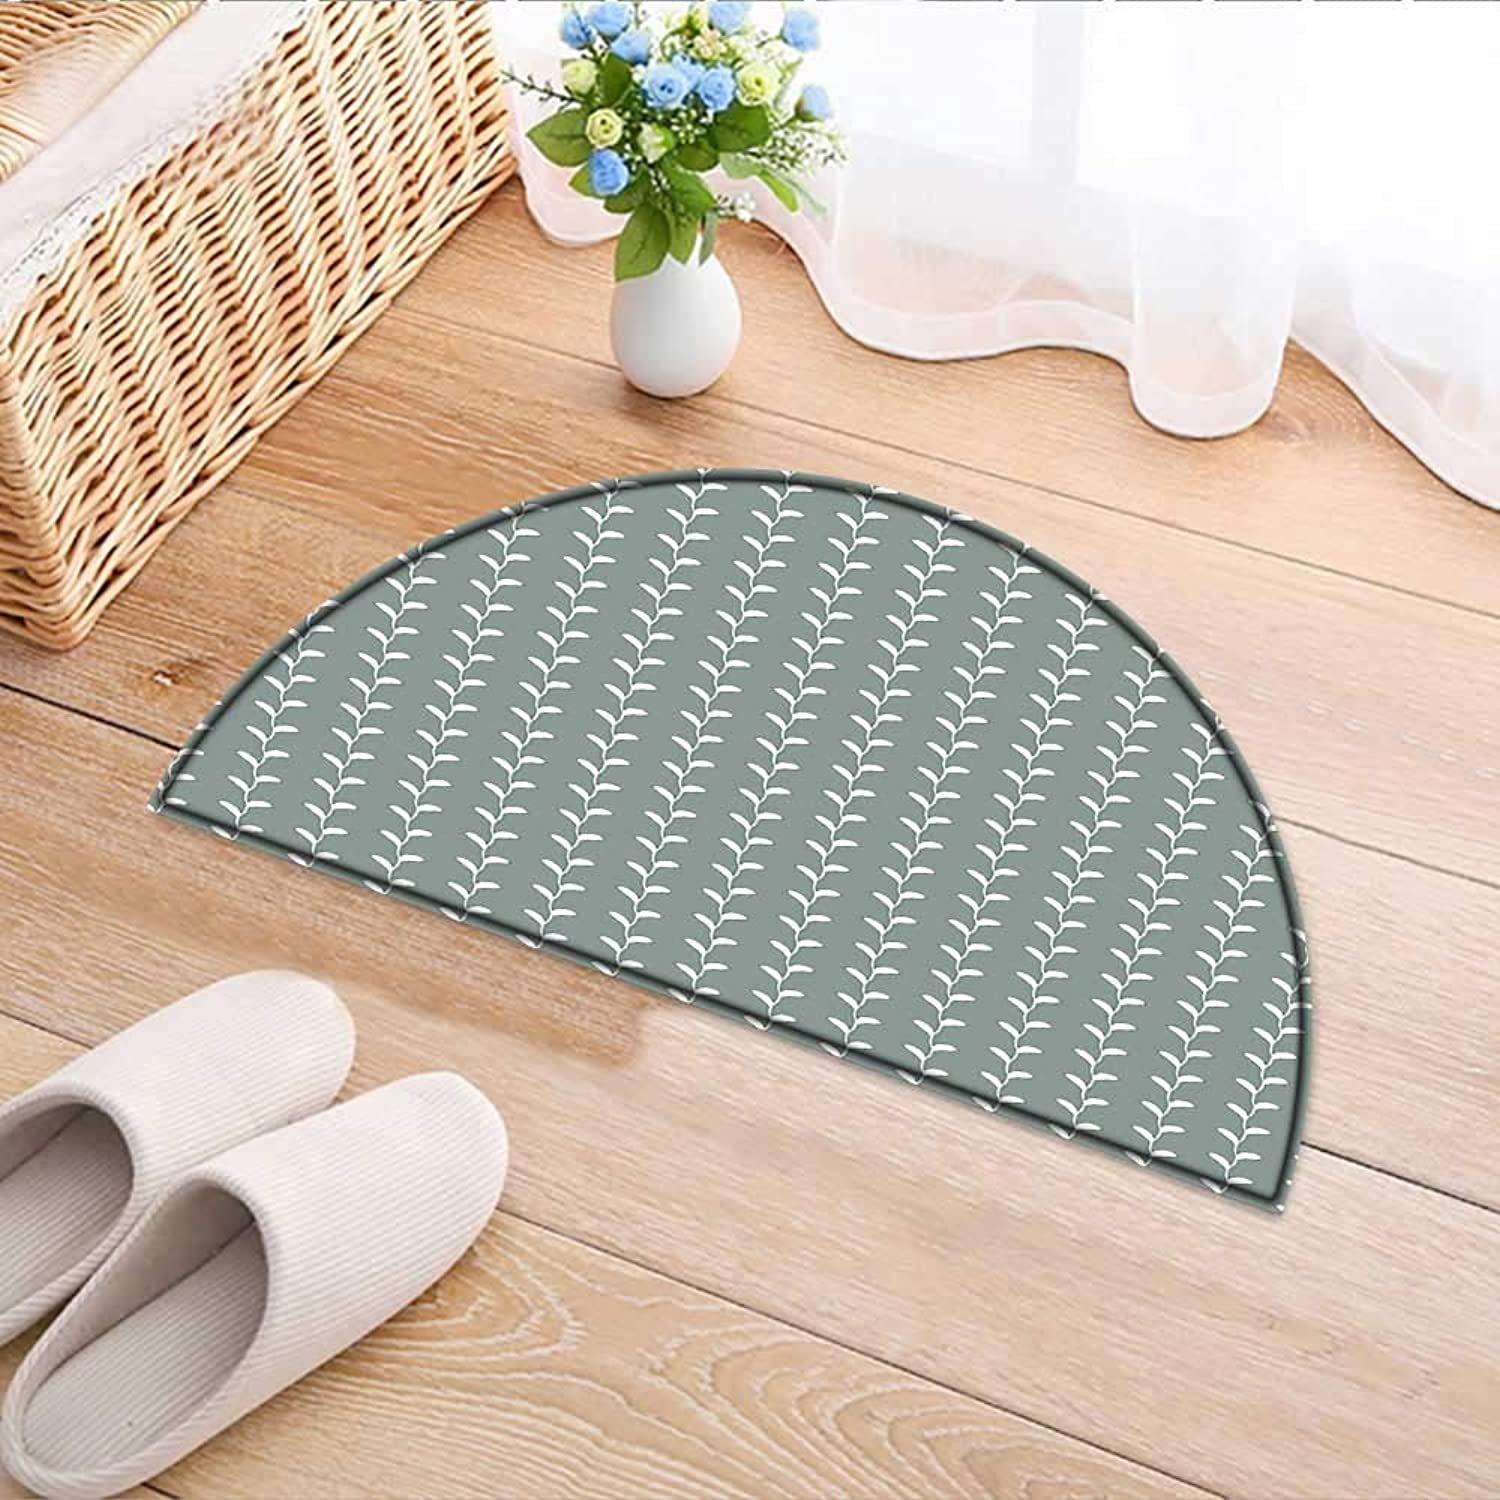 Semicircle Area Rug Carpet Classic Wavy Branches with Leaves greenical Lined Nature Themed Light Sage Green White Door mat Indoors Bathroom Mats Non Slip W59 x H35 INCH